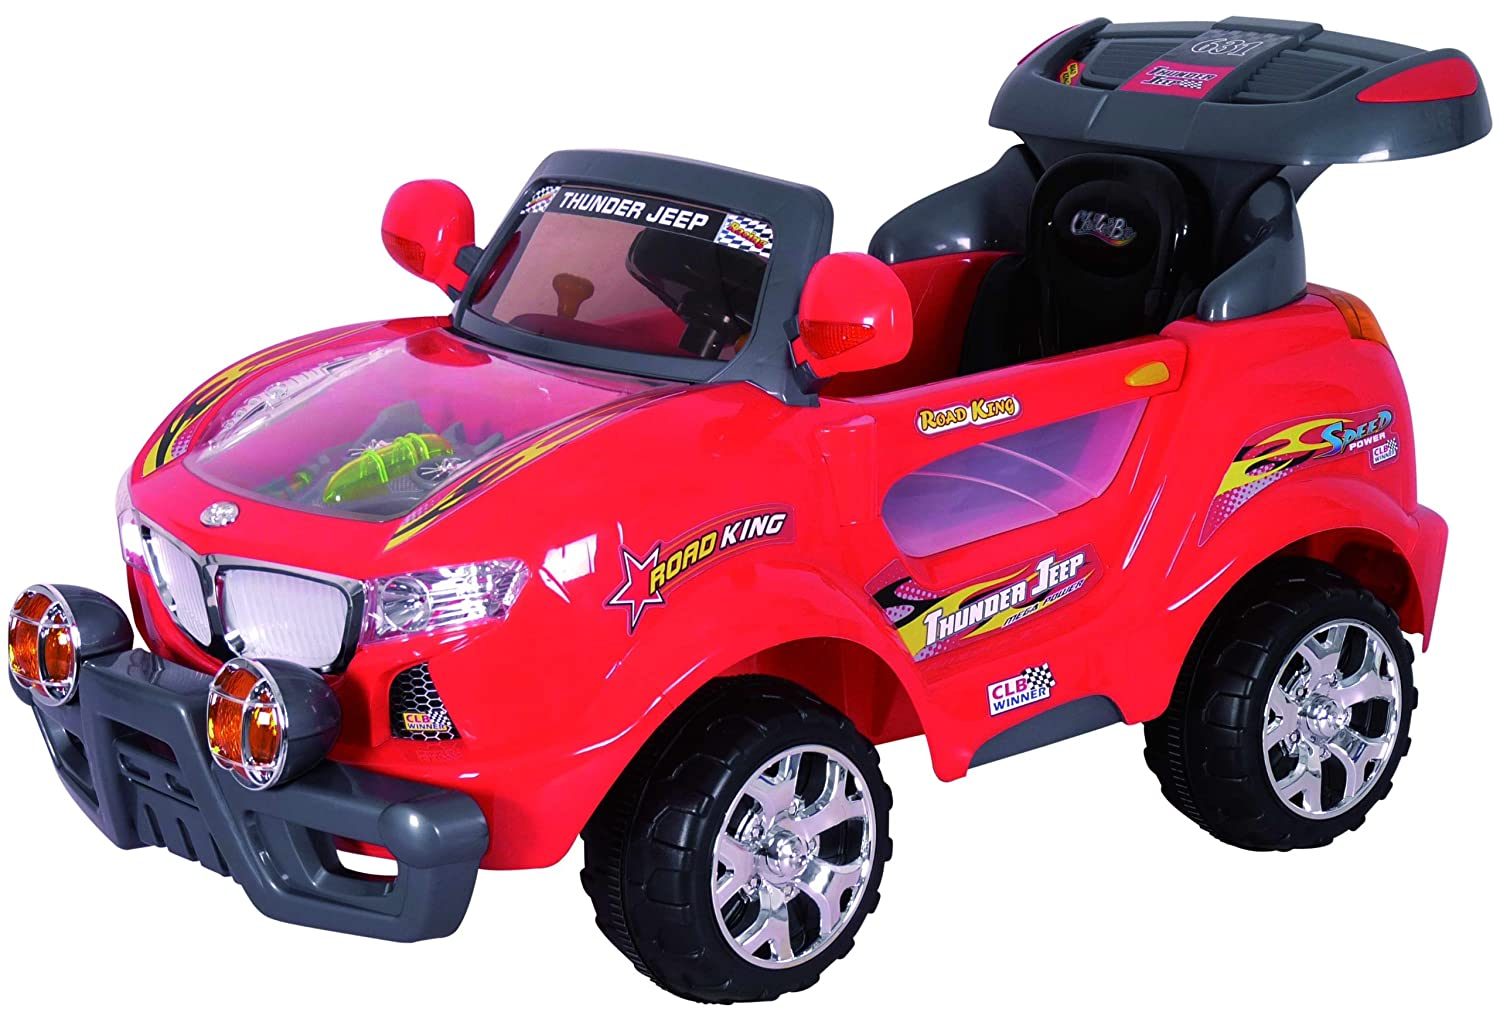 Amazoncom Best Ride On Cars R V Kids Thunder SUV Red - Ride on cars